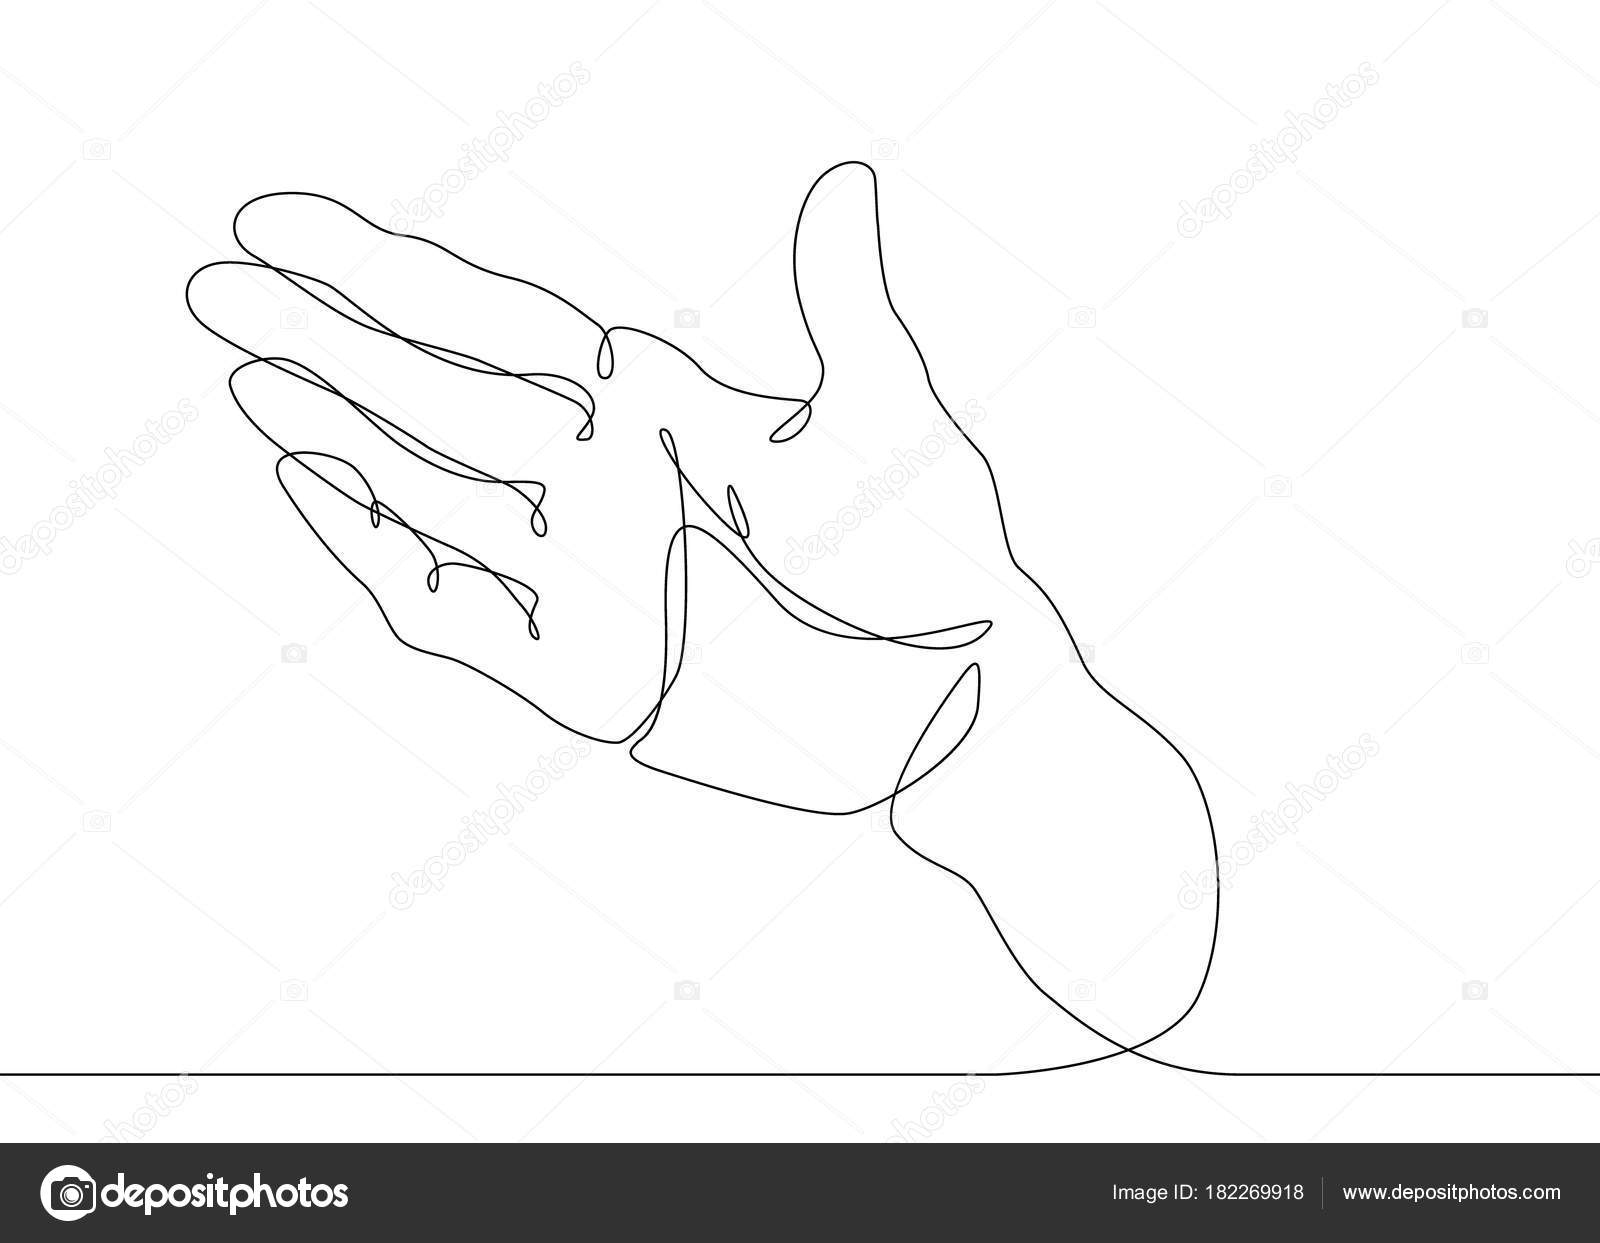 Single Line Text Art : Continuous line drawing palm open gesture u stock vector